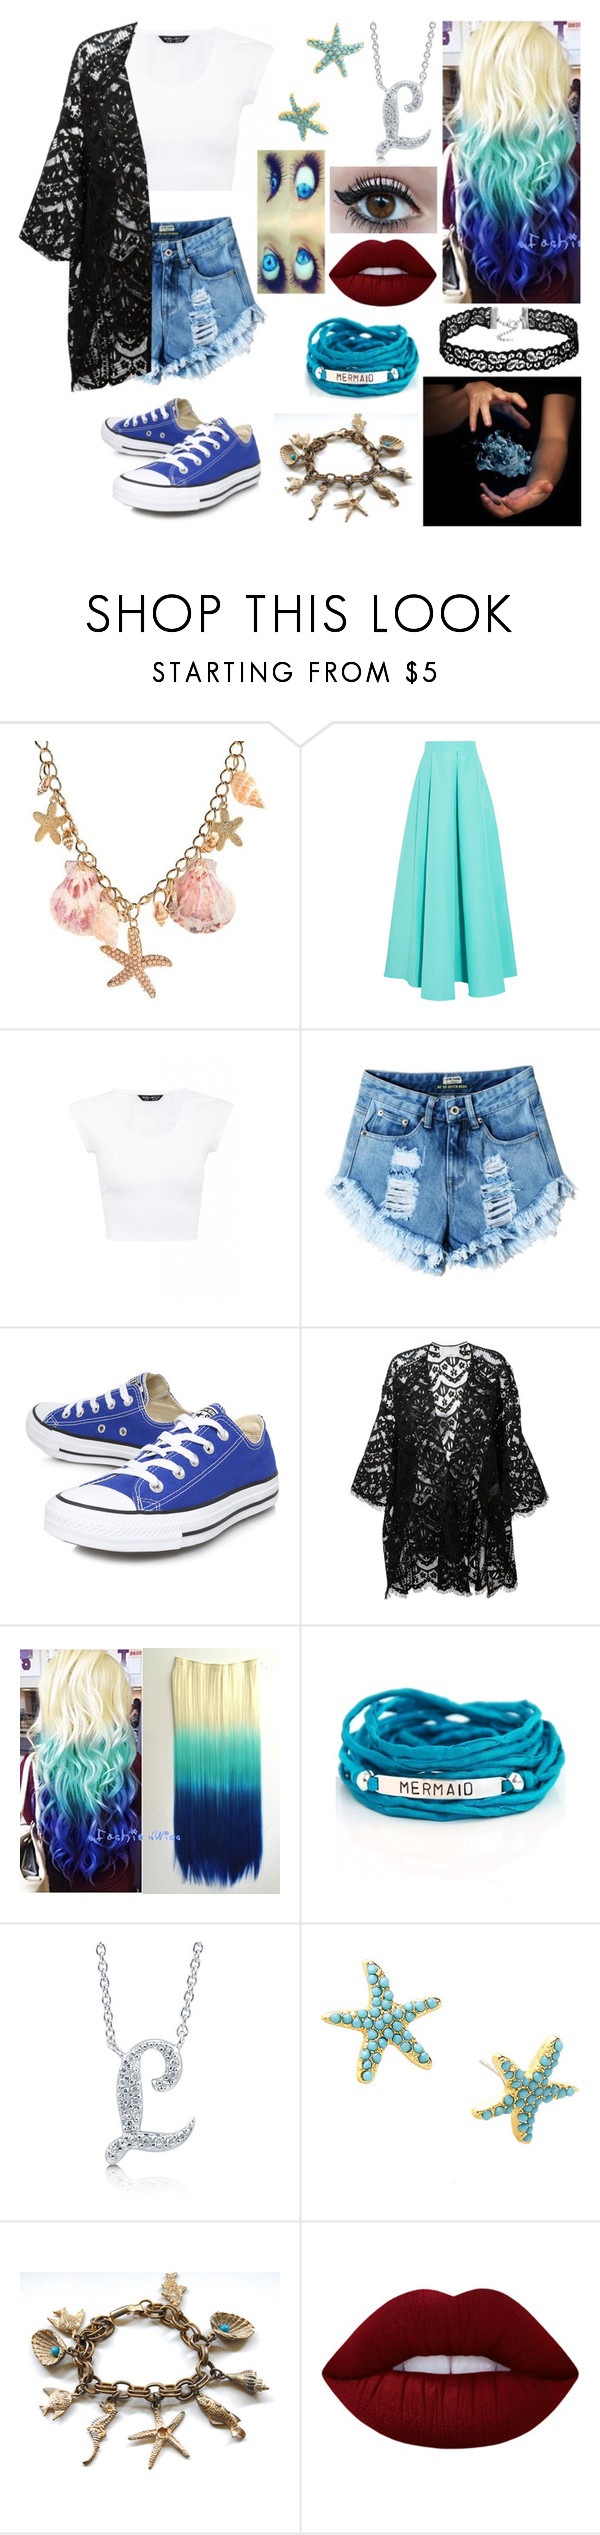 """I go, I go, I go, I go, crazy."" by skh-siera18 ❤ liked on Polyvore featuring Roksanda, Converse, Chloé, Blooming Lotus Jewelry, BERRICLE, Lilly Pulitzer and Lime Crime"